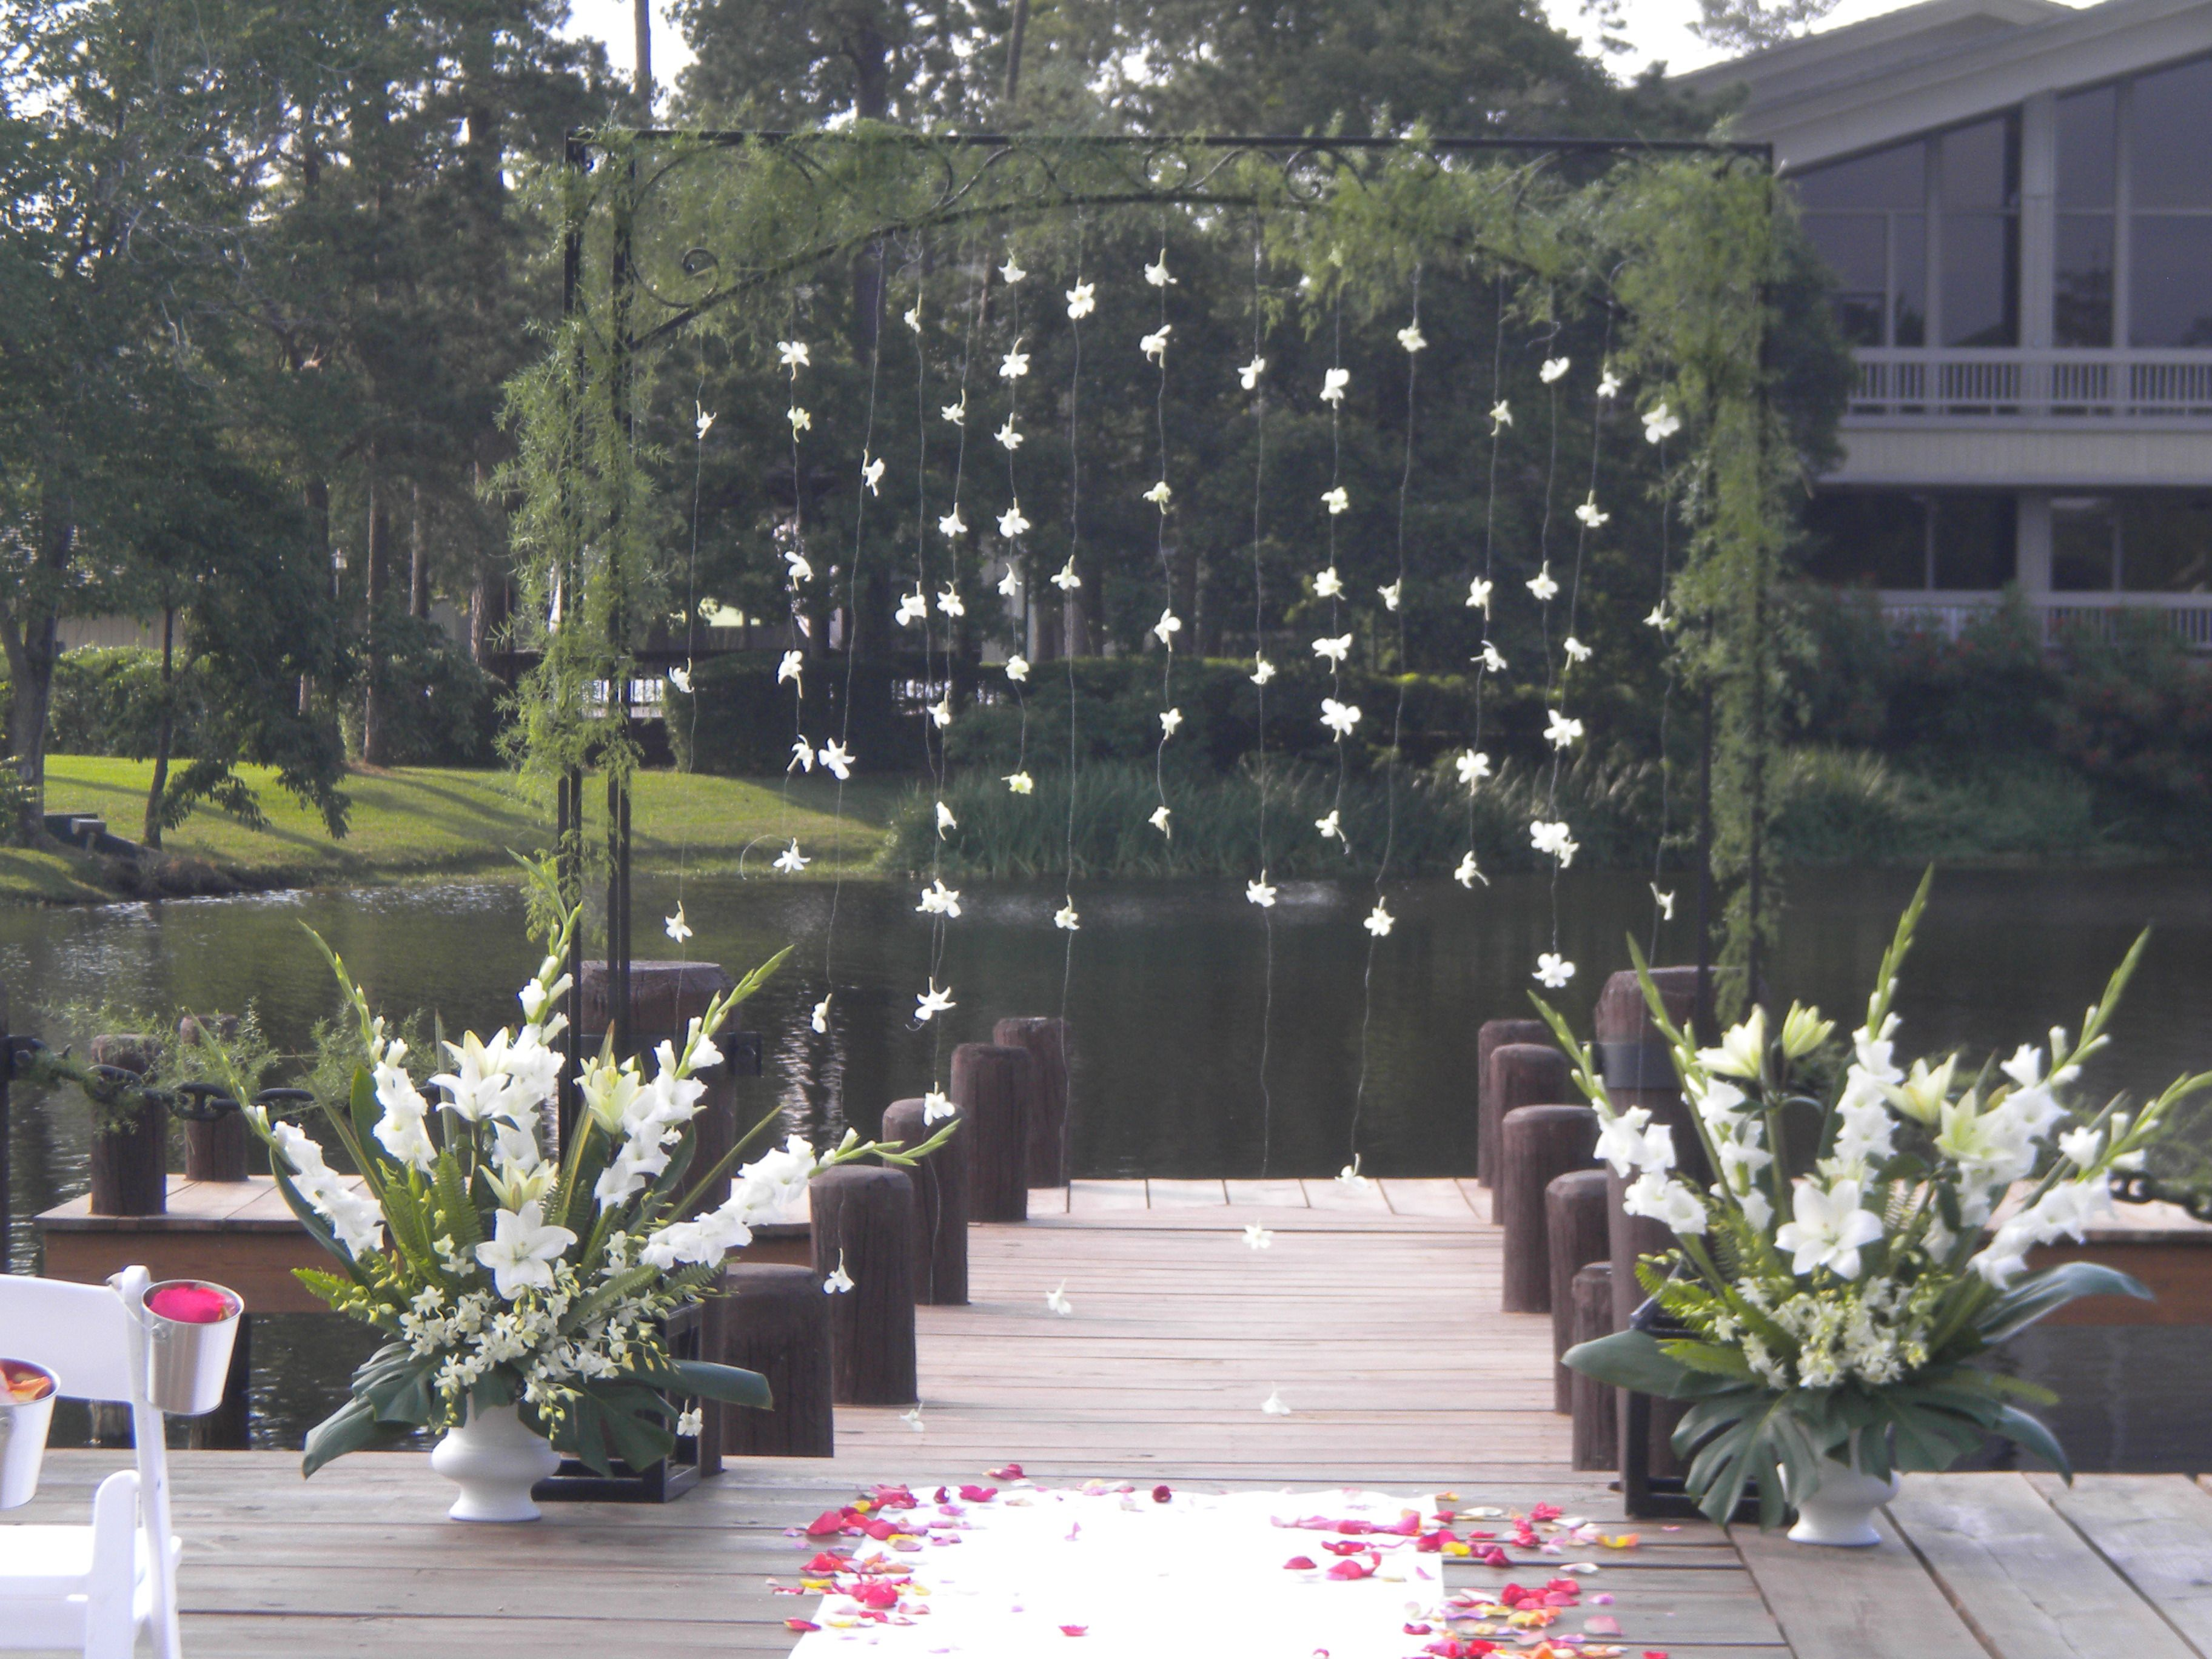 All white and gold wedding decor  Ceremony decor  arch with hanging orchids and all white free